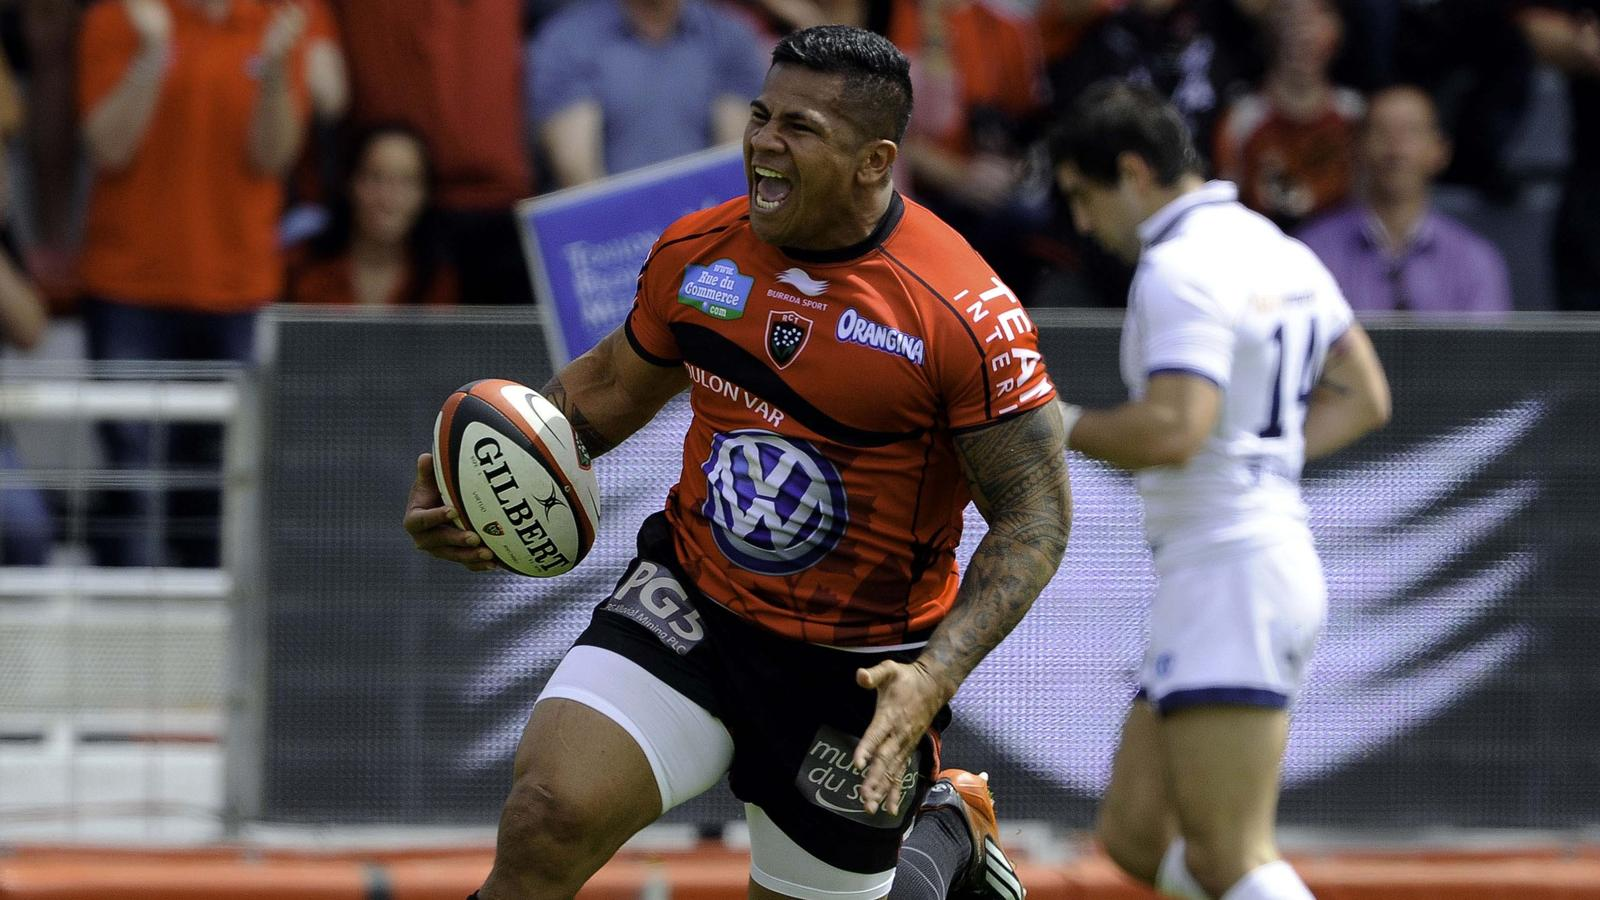 David Smith - Toulon Agen - 4 mai 2013